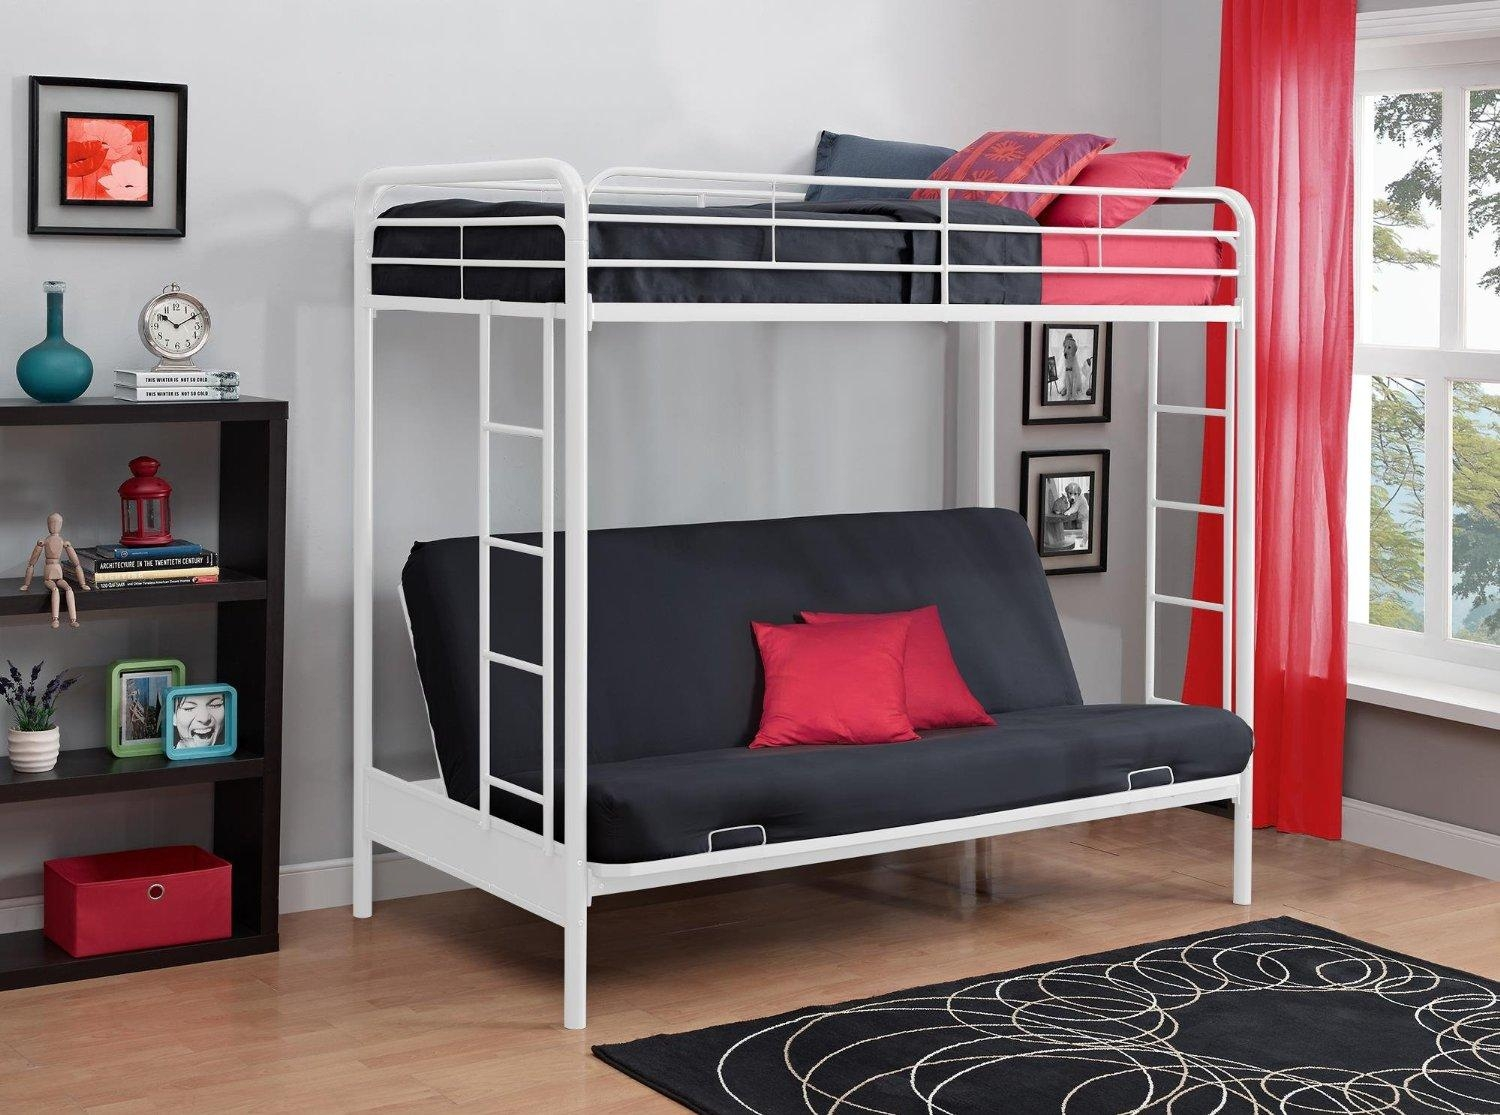 Total Fab: Metal & Wood Loft Beds With Sofa Underneath Throughout Bunk Bed With Sofas Underneath (Image 19 of 20)